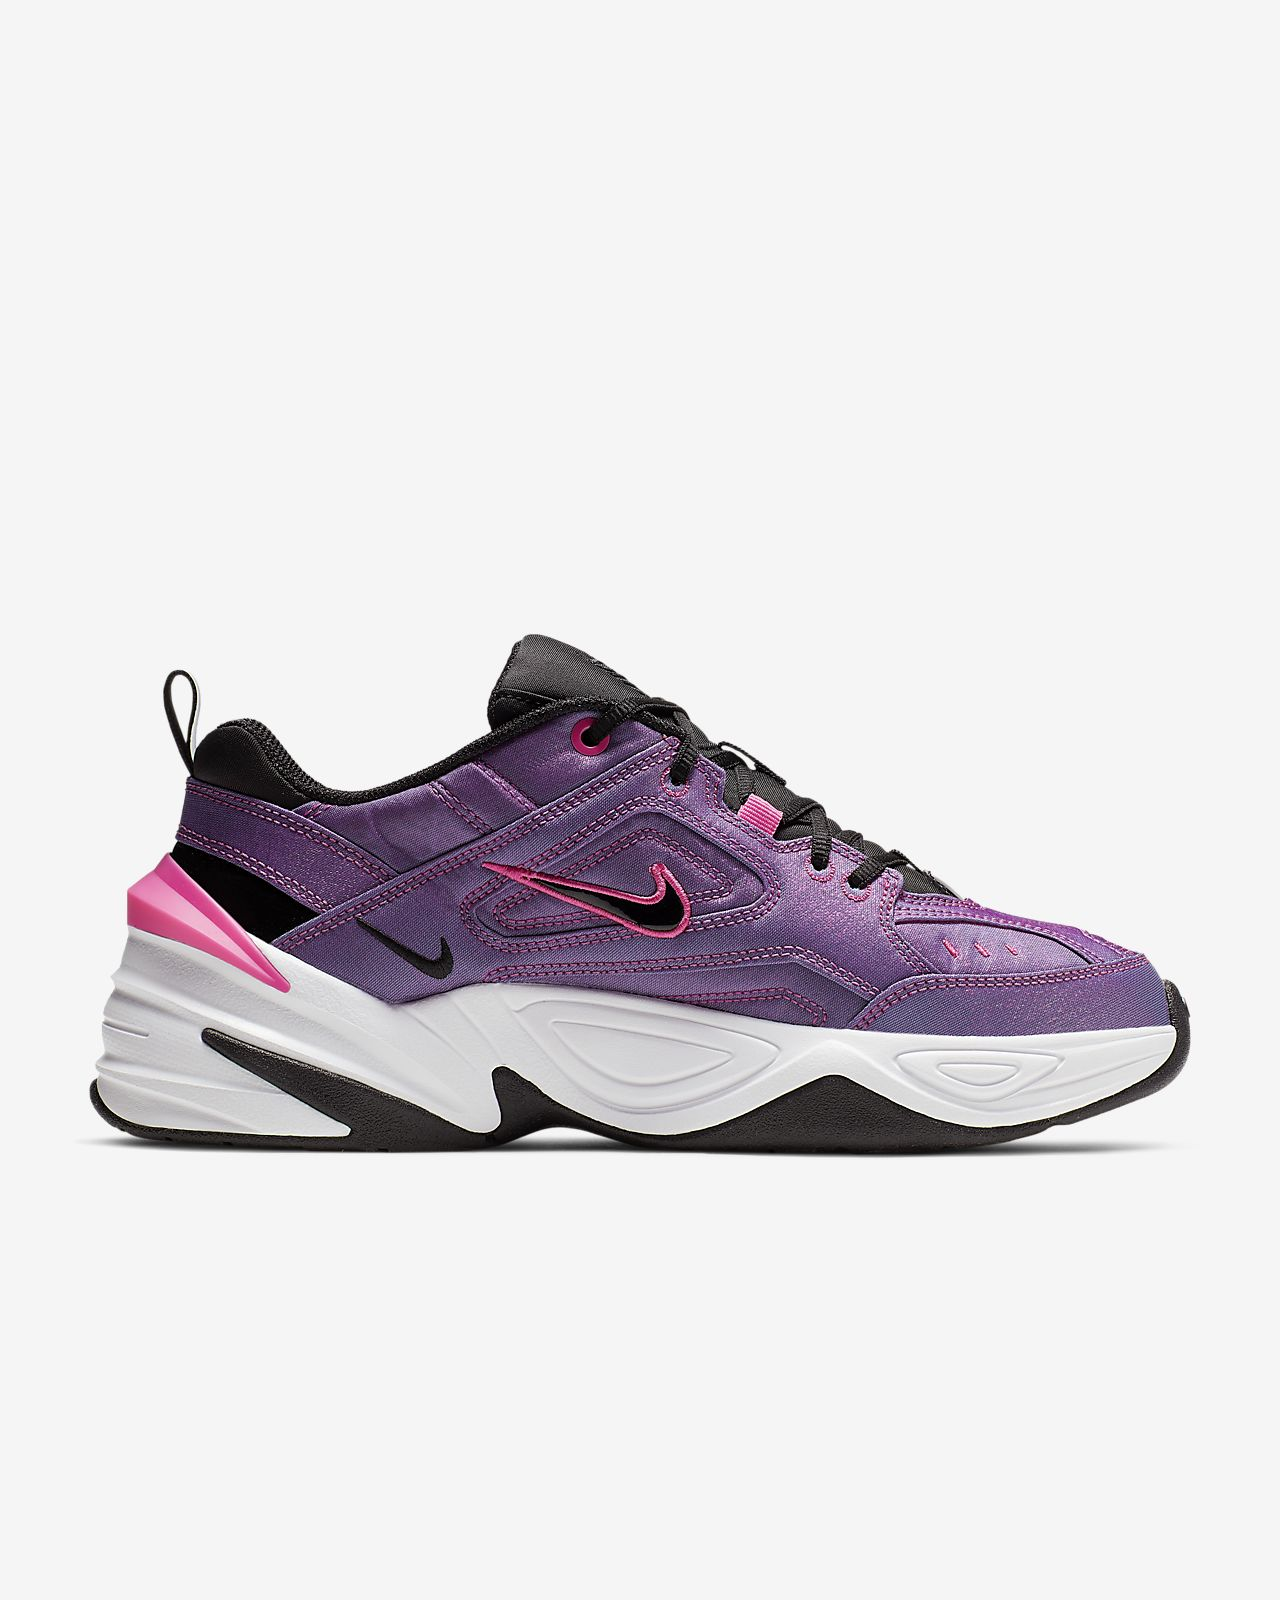 official photos d0c78 a9aae ... Nike M2K Tekno SE Women s Shoe